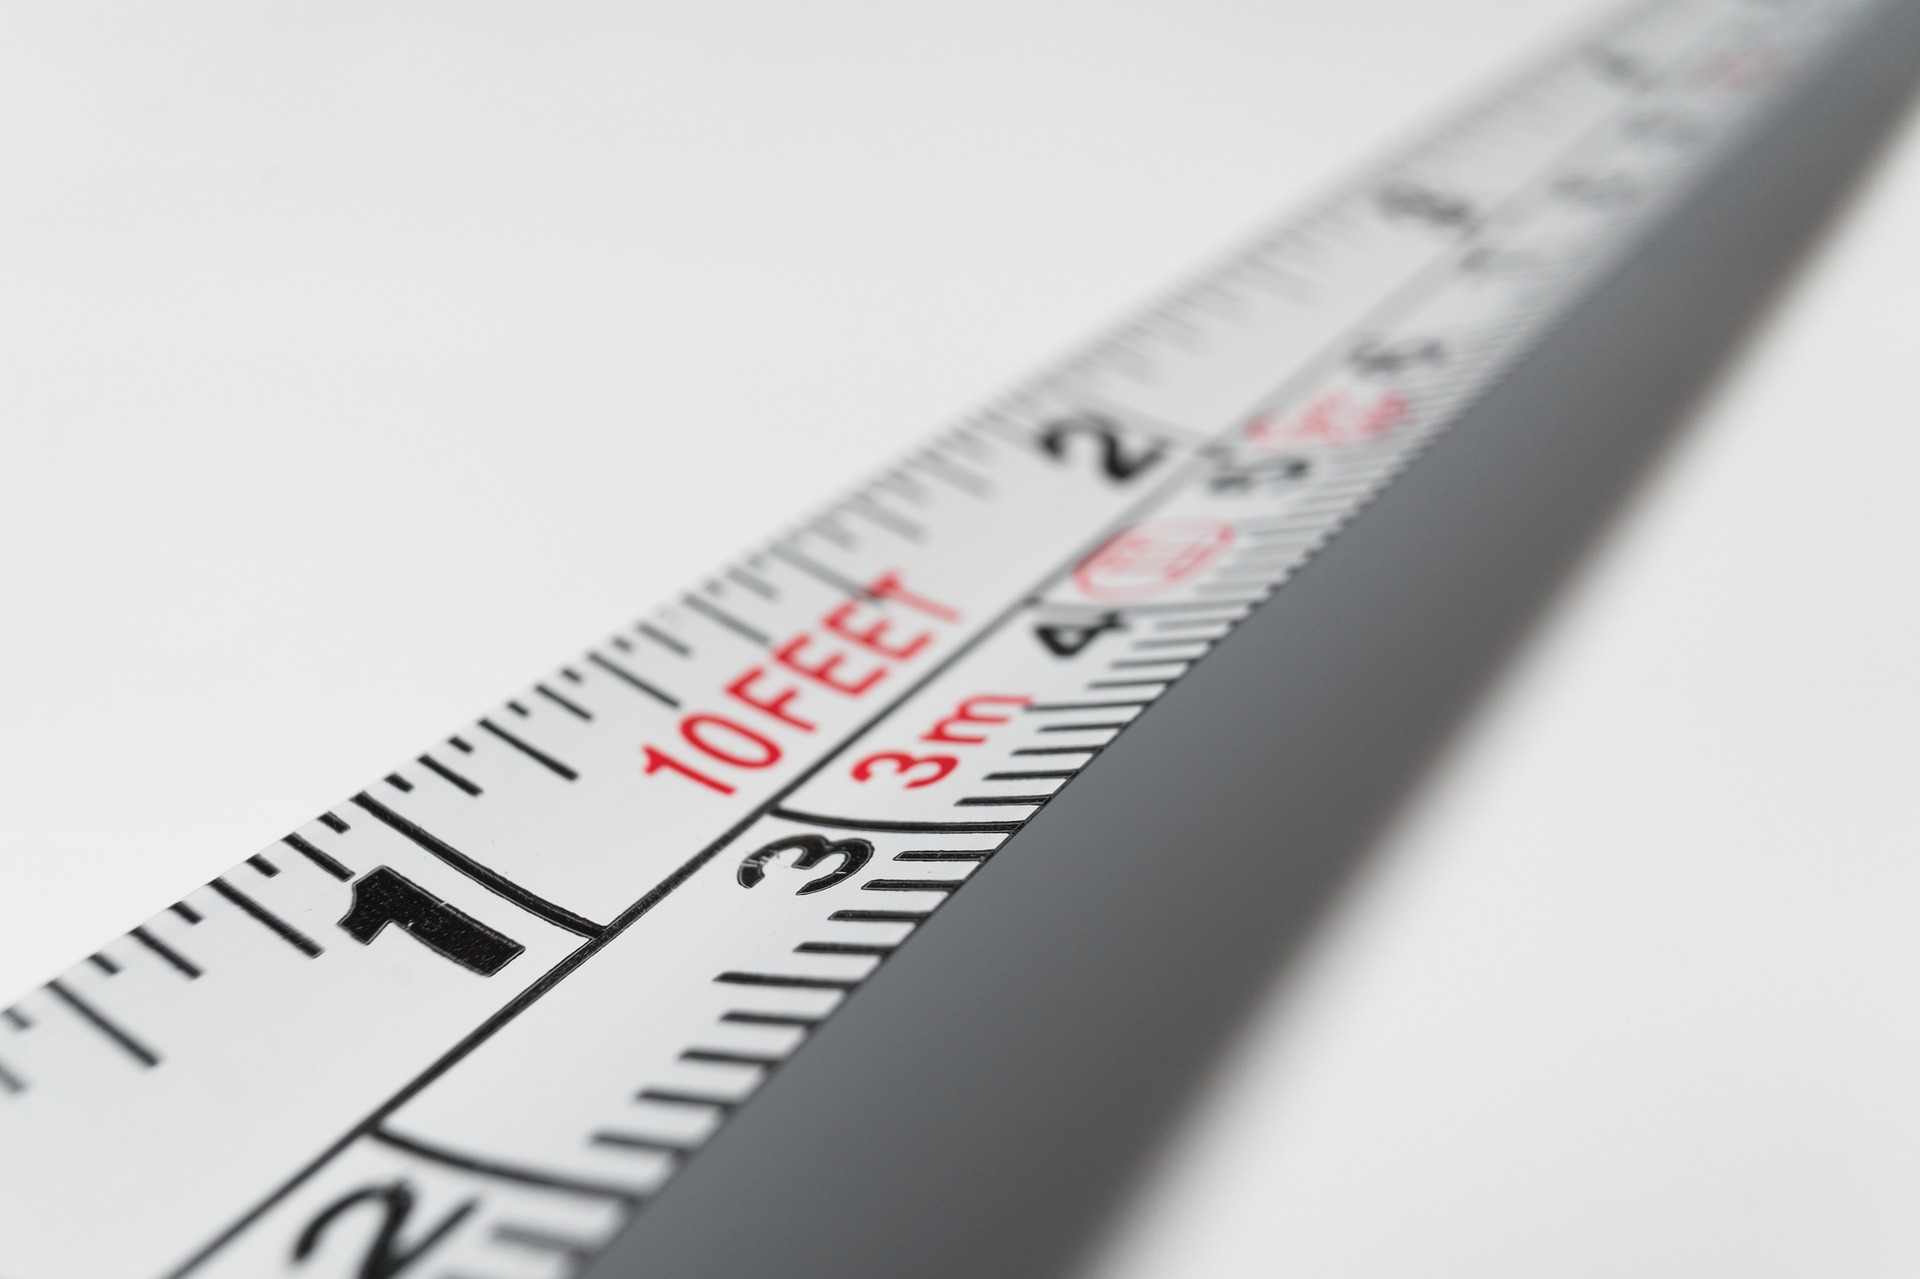 Successful Change Management by Measuring Performance and Engaging Employees